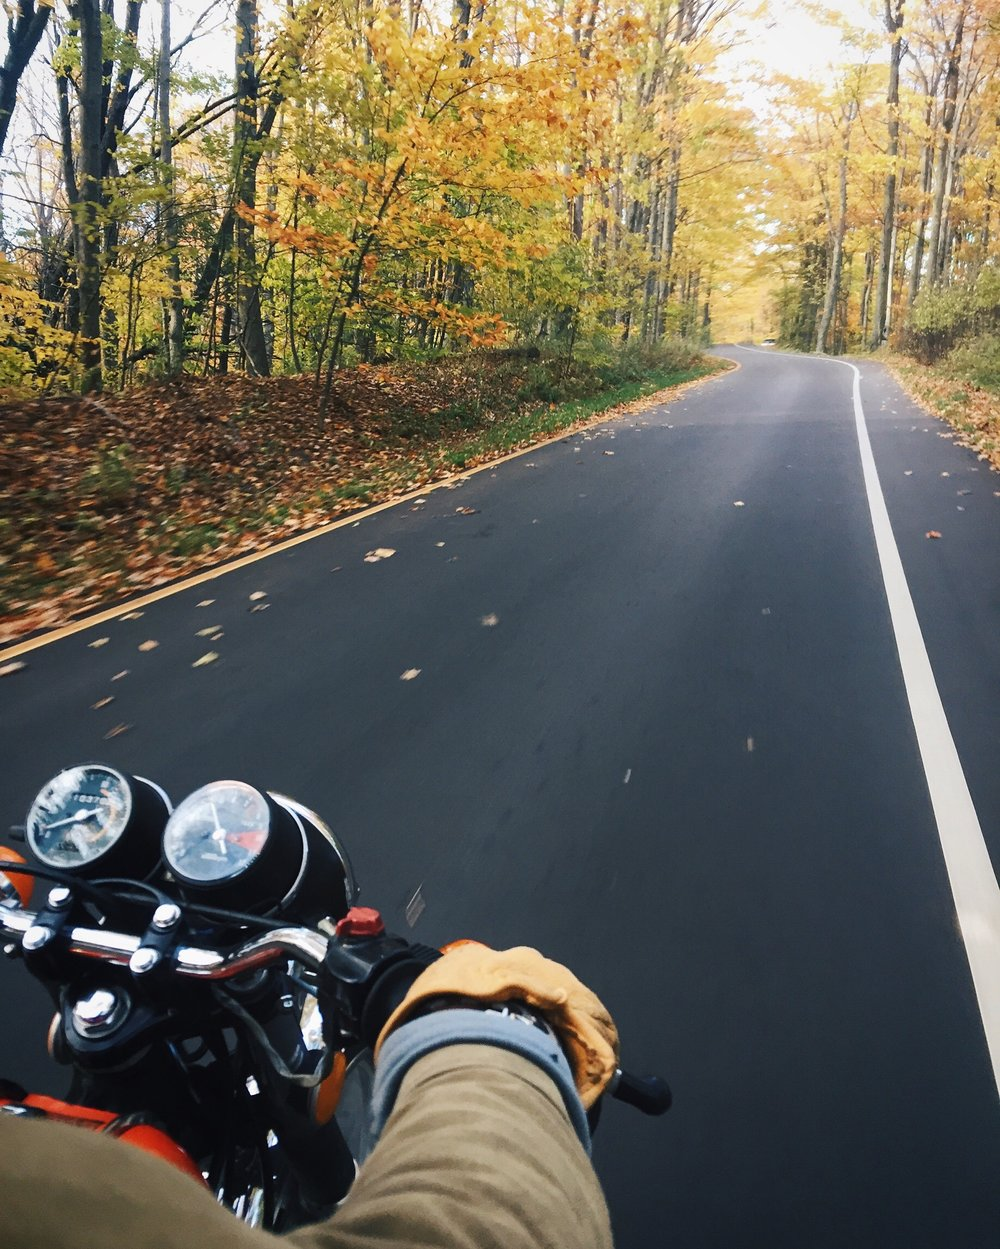 motorcycle, fall, autumn